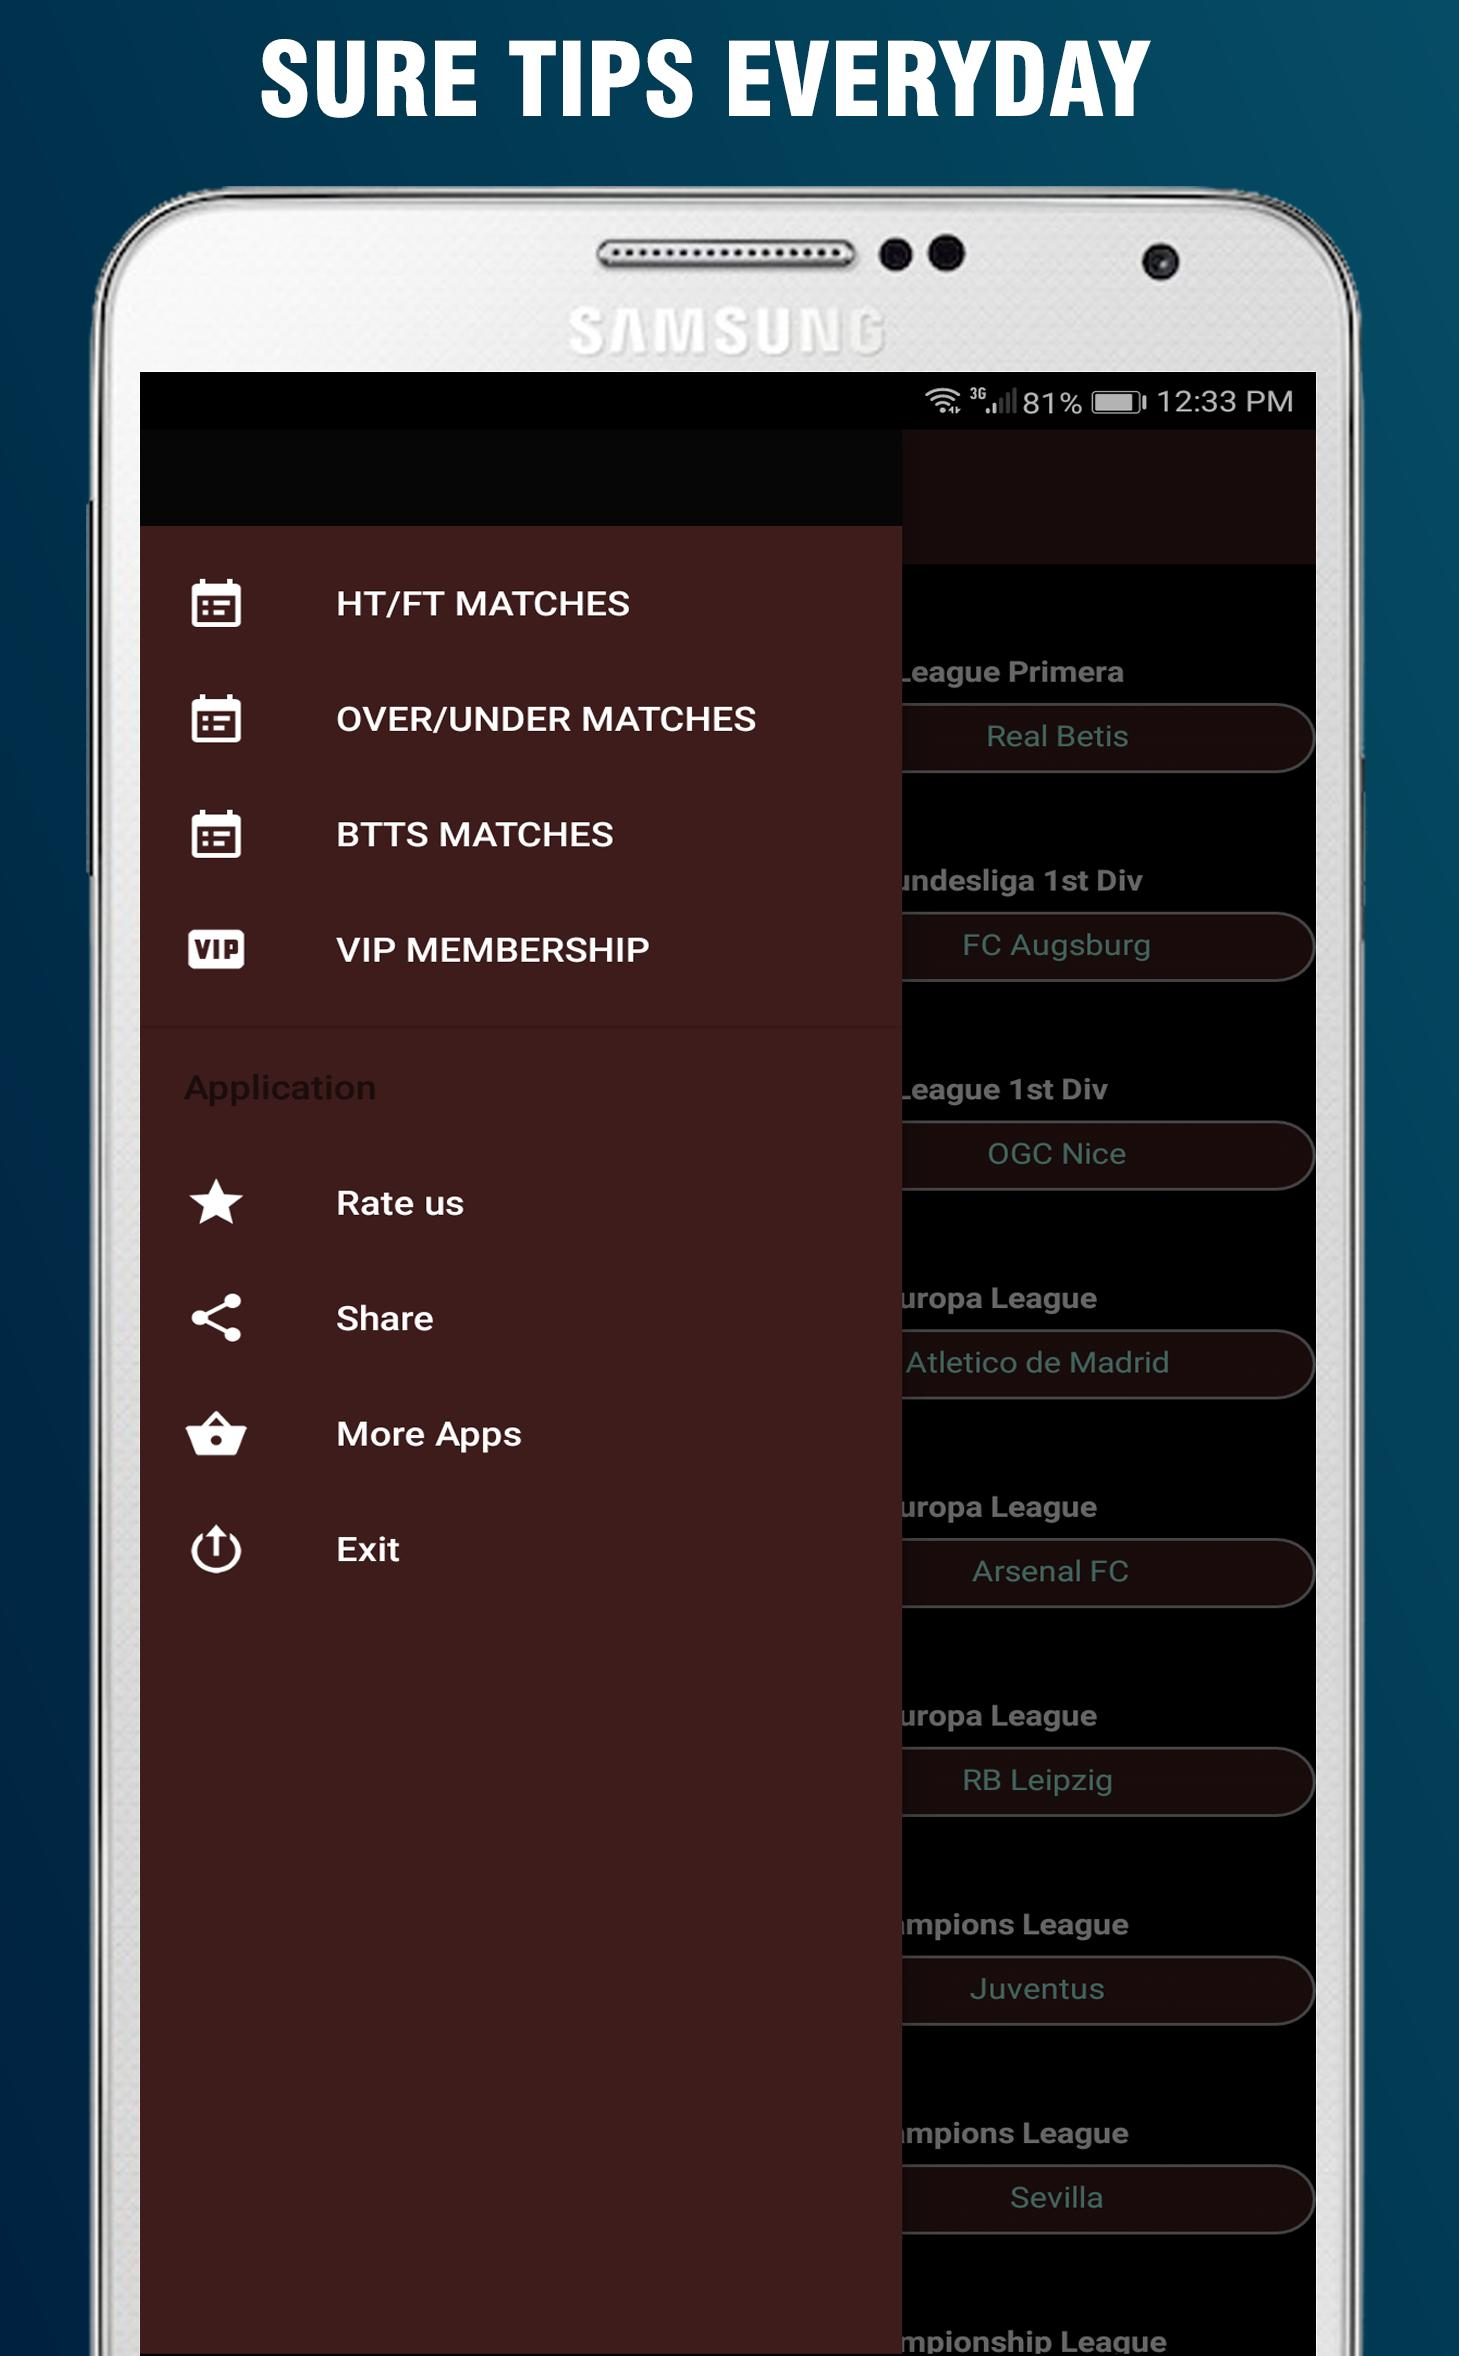 New betting tips application under over betting rules